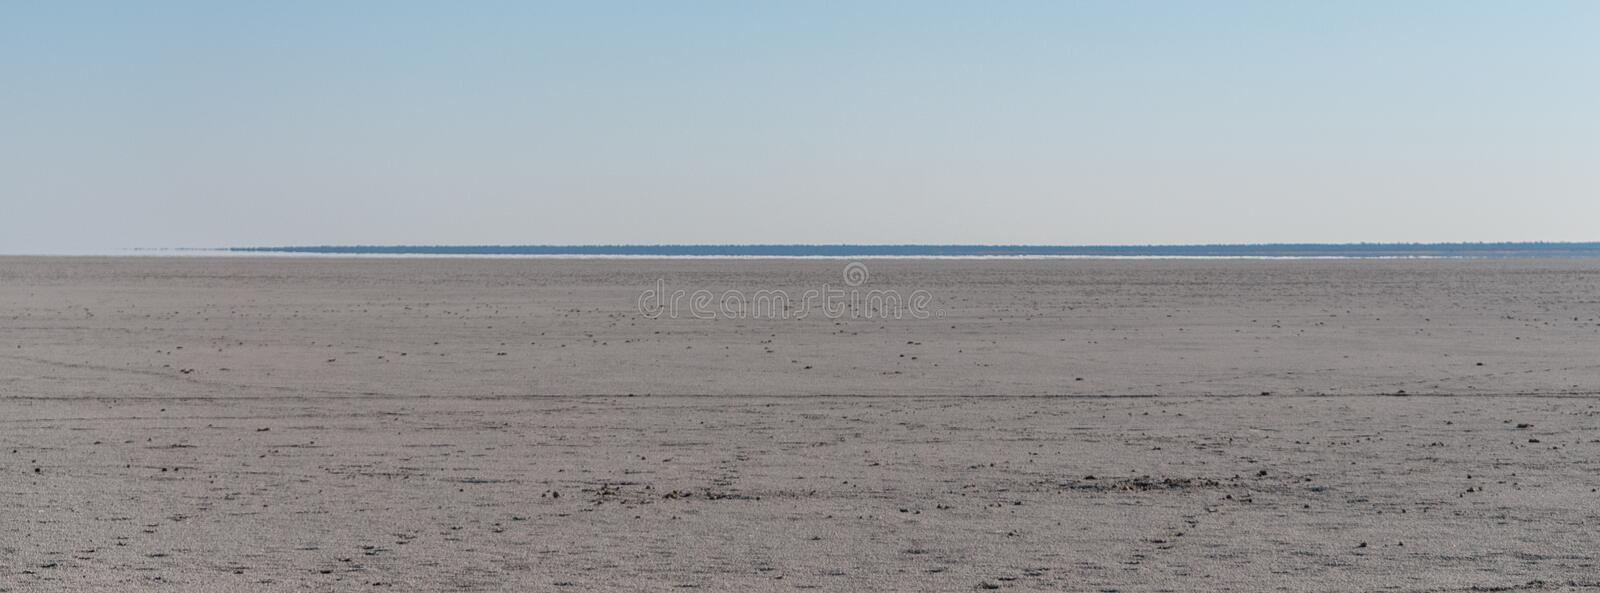 The Etosha Salt Pan. An overview of the empty space of the Etosha salt pan, Ethosha National Park, Namibia royalty free stock photos